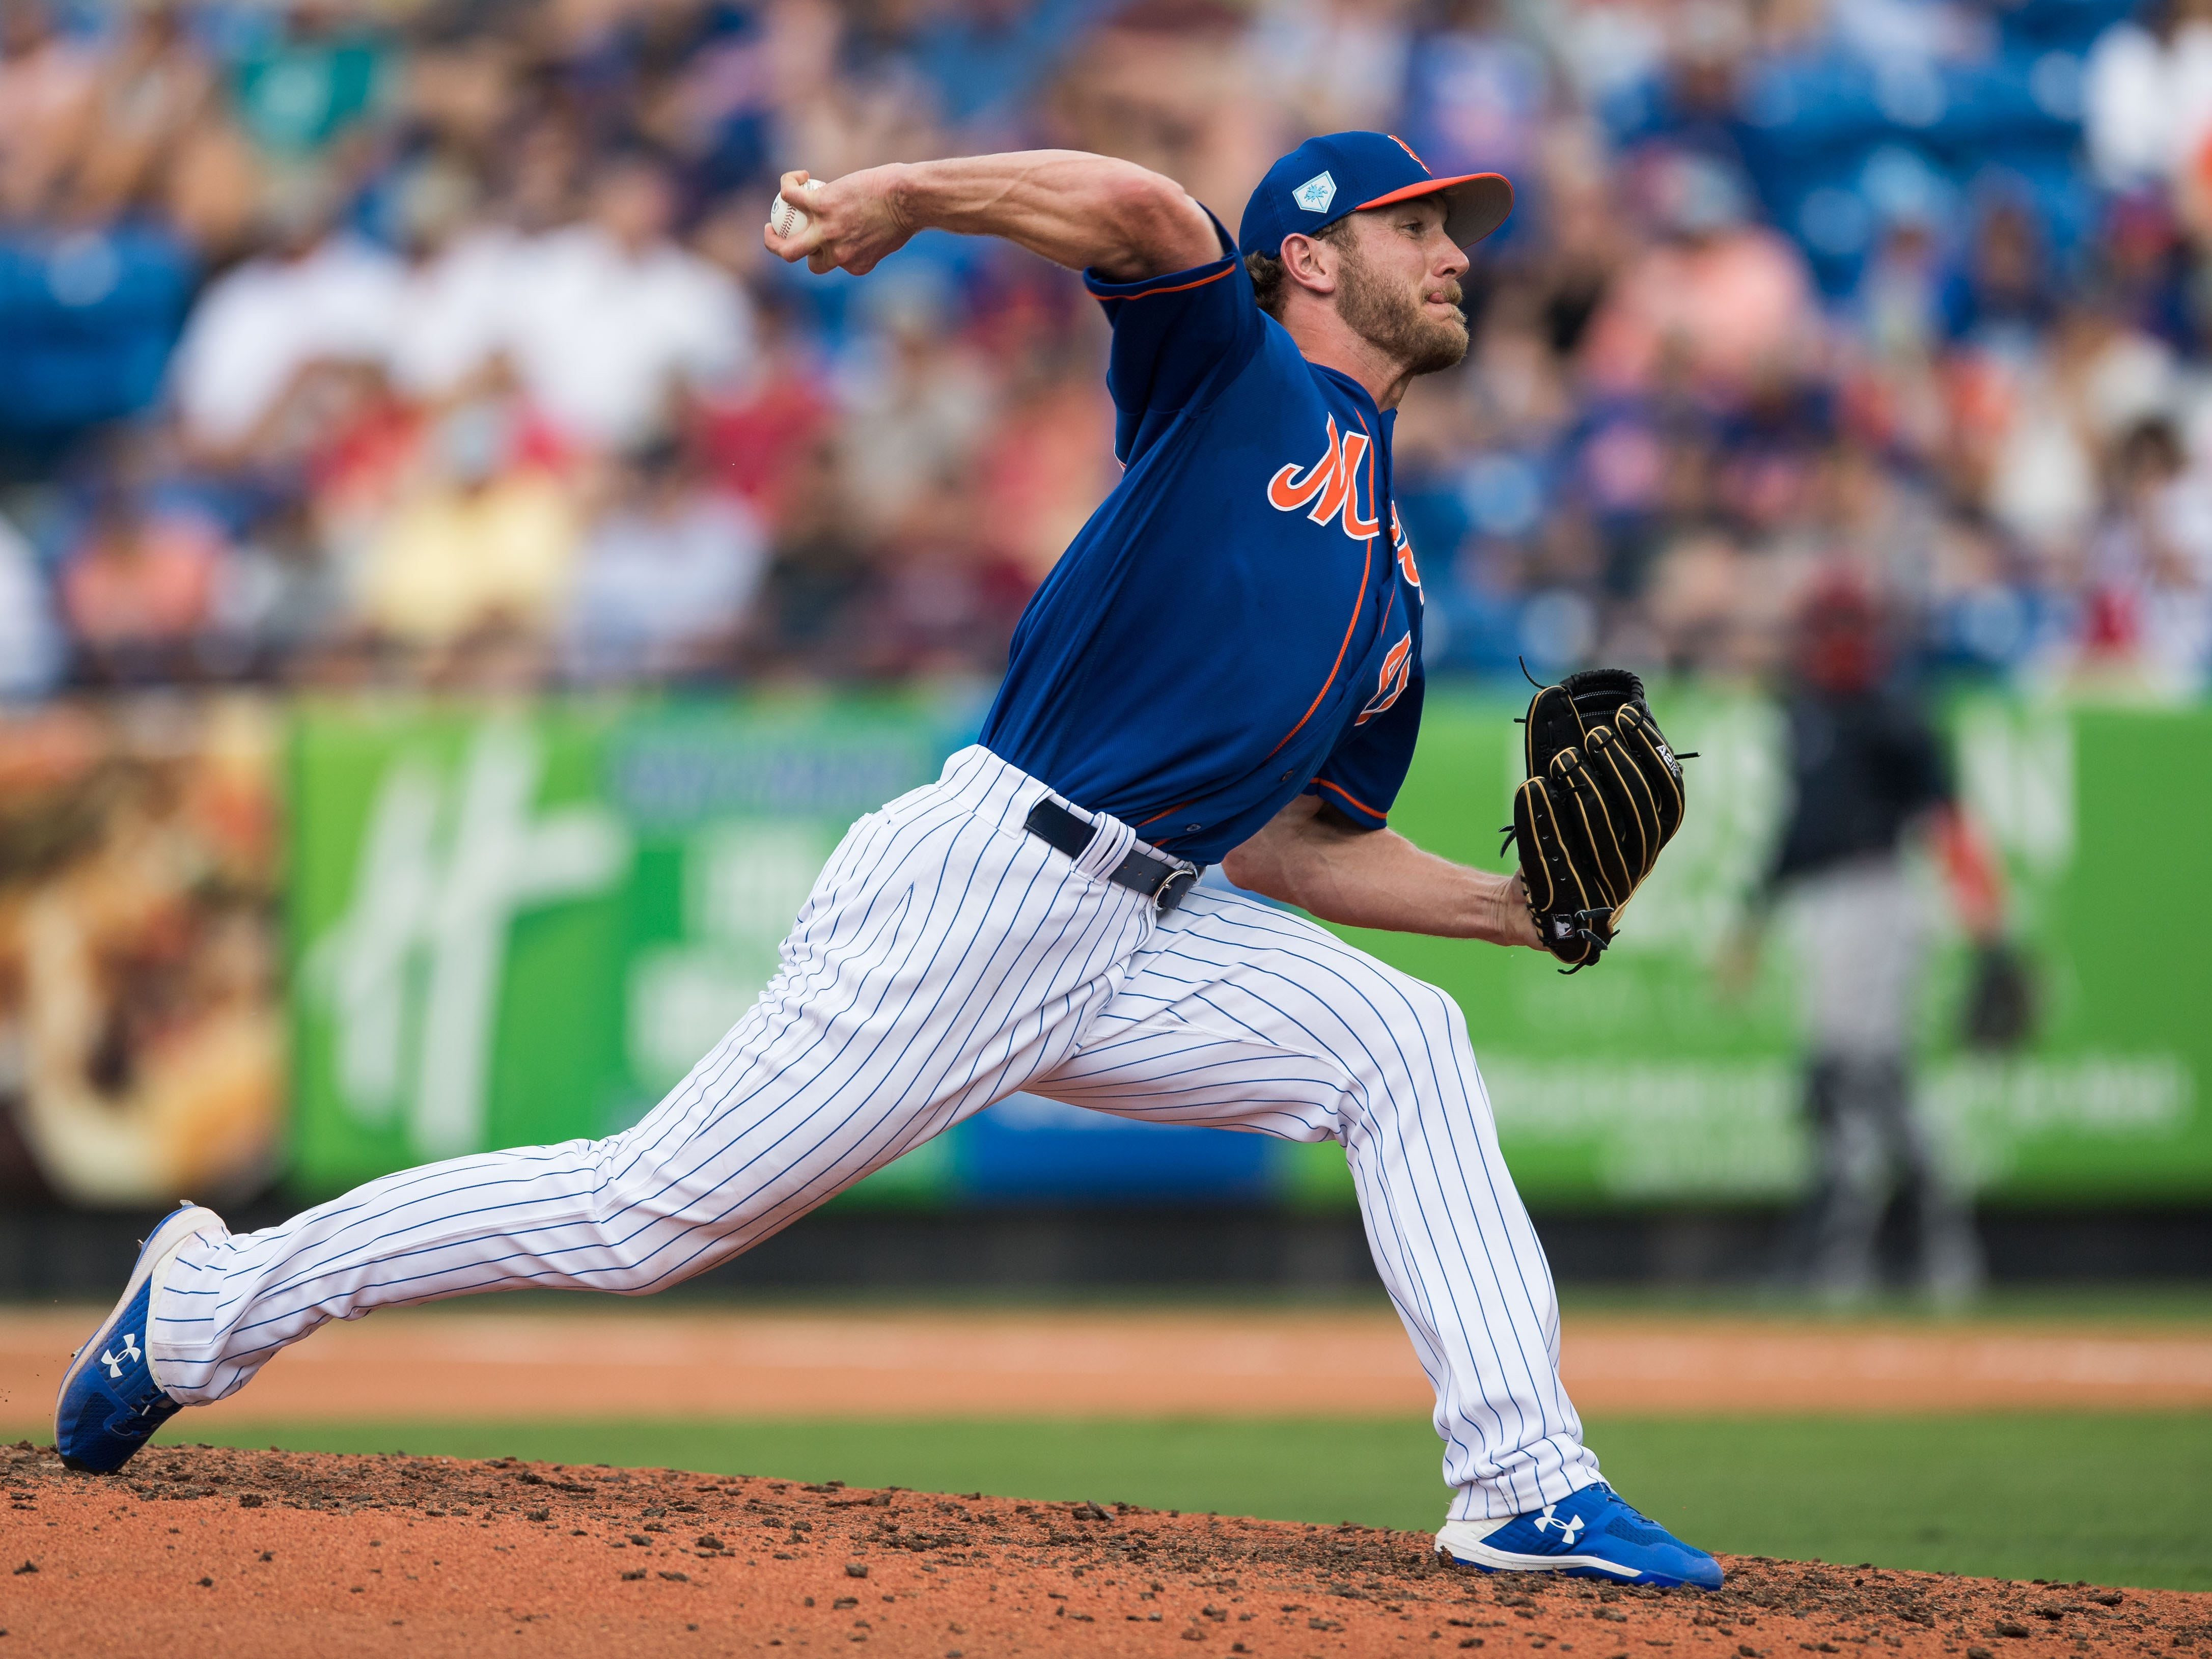 New York Mets pitcher Drew Gagnon pitches in the sixth inning against the Atlanta Braves during their opening spring training game Saturday, Feb. 23, 2019, at First Data Field in Port St. Lucie.